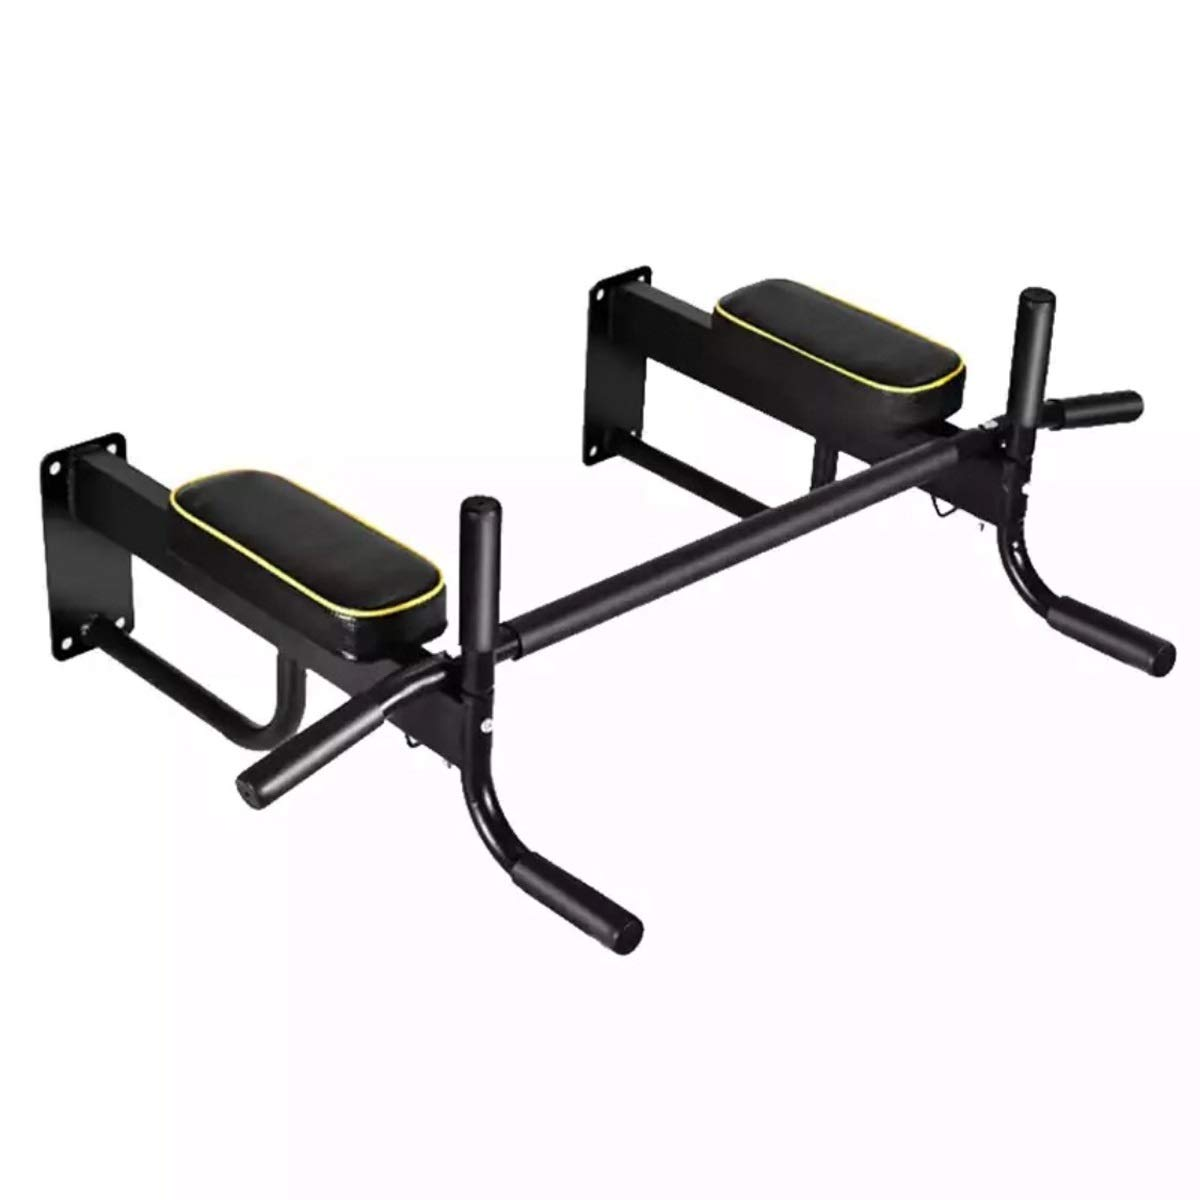 Pull Up Wall Horizontal Bar Household Wall-Mounted Horizontal Bar Wall Horizontal Bar Pull-up Fitness Equipment Spine Stretcher Punch Single Parallel Bars Wall Single Parallel Bars by Baianju